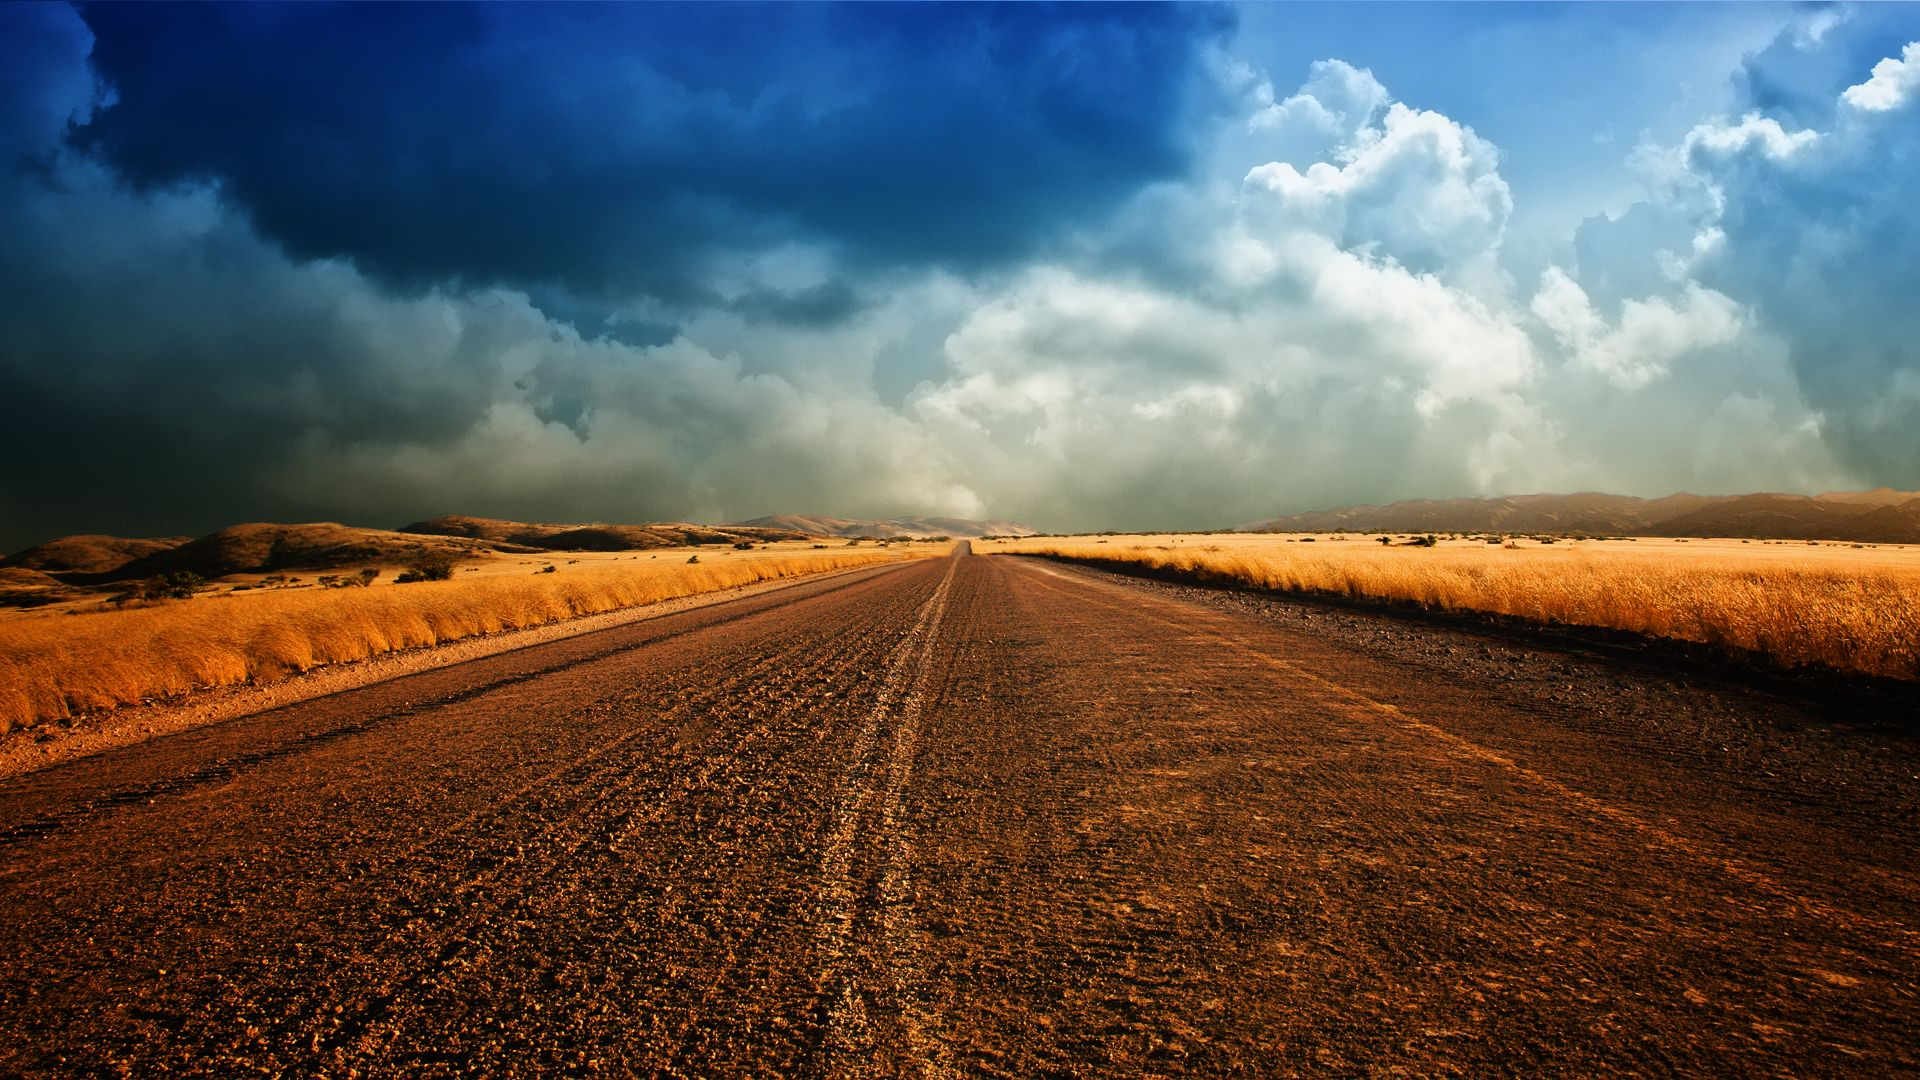 Country Road Hd Images Beautiful S FFSoccerus